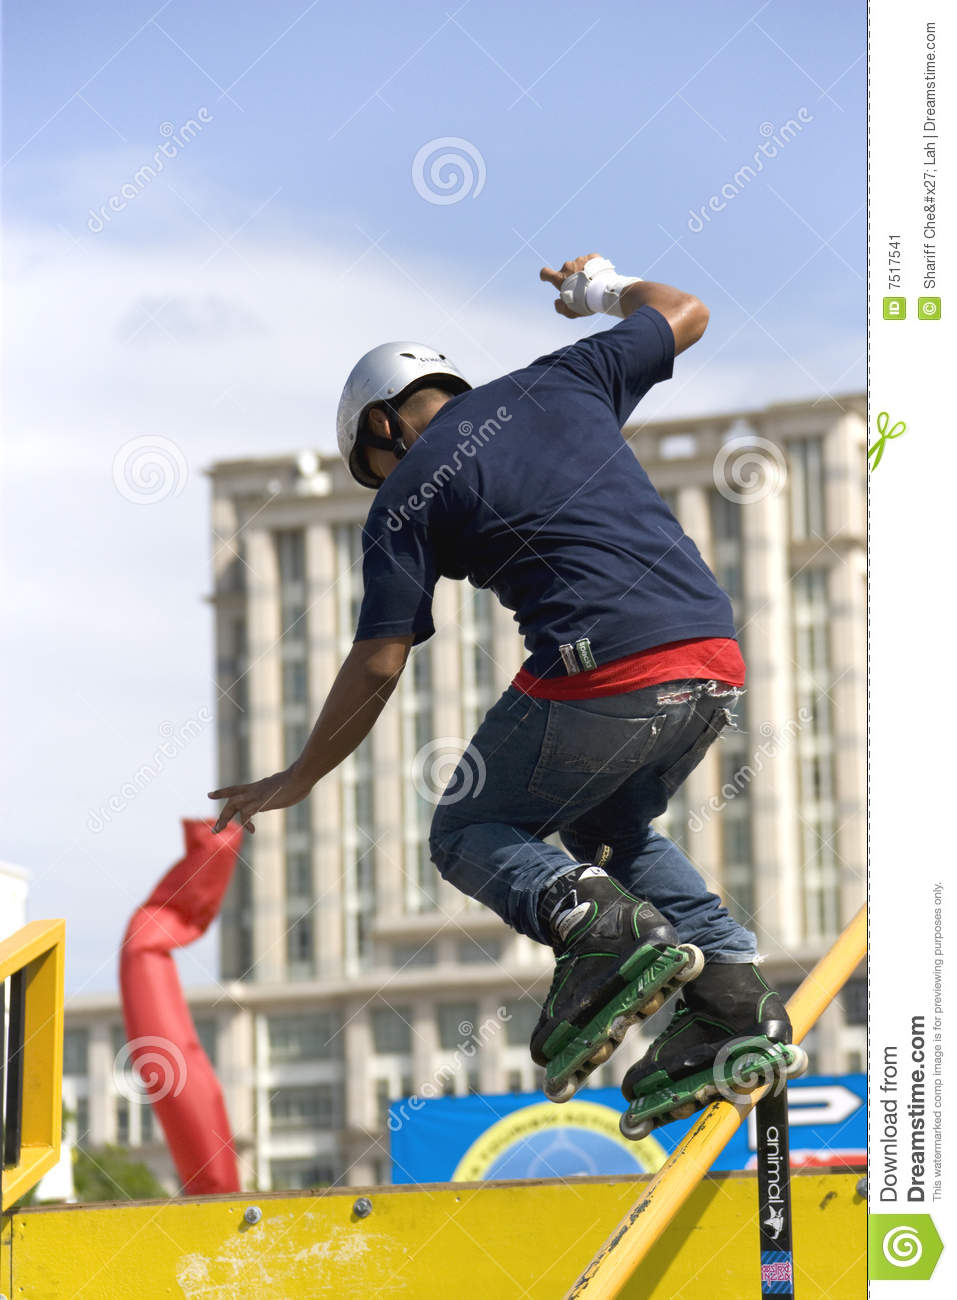 Advantages of skating experience as aggressive street sport